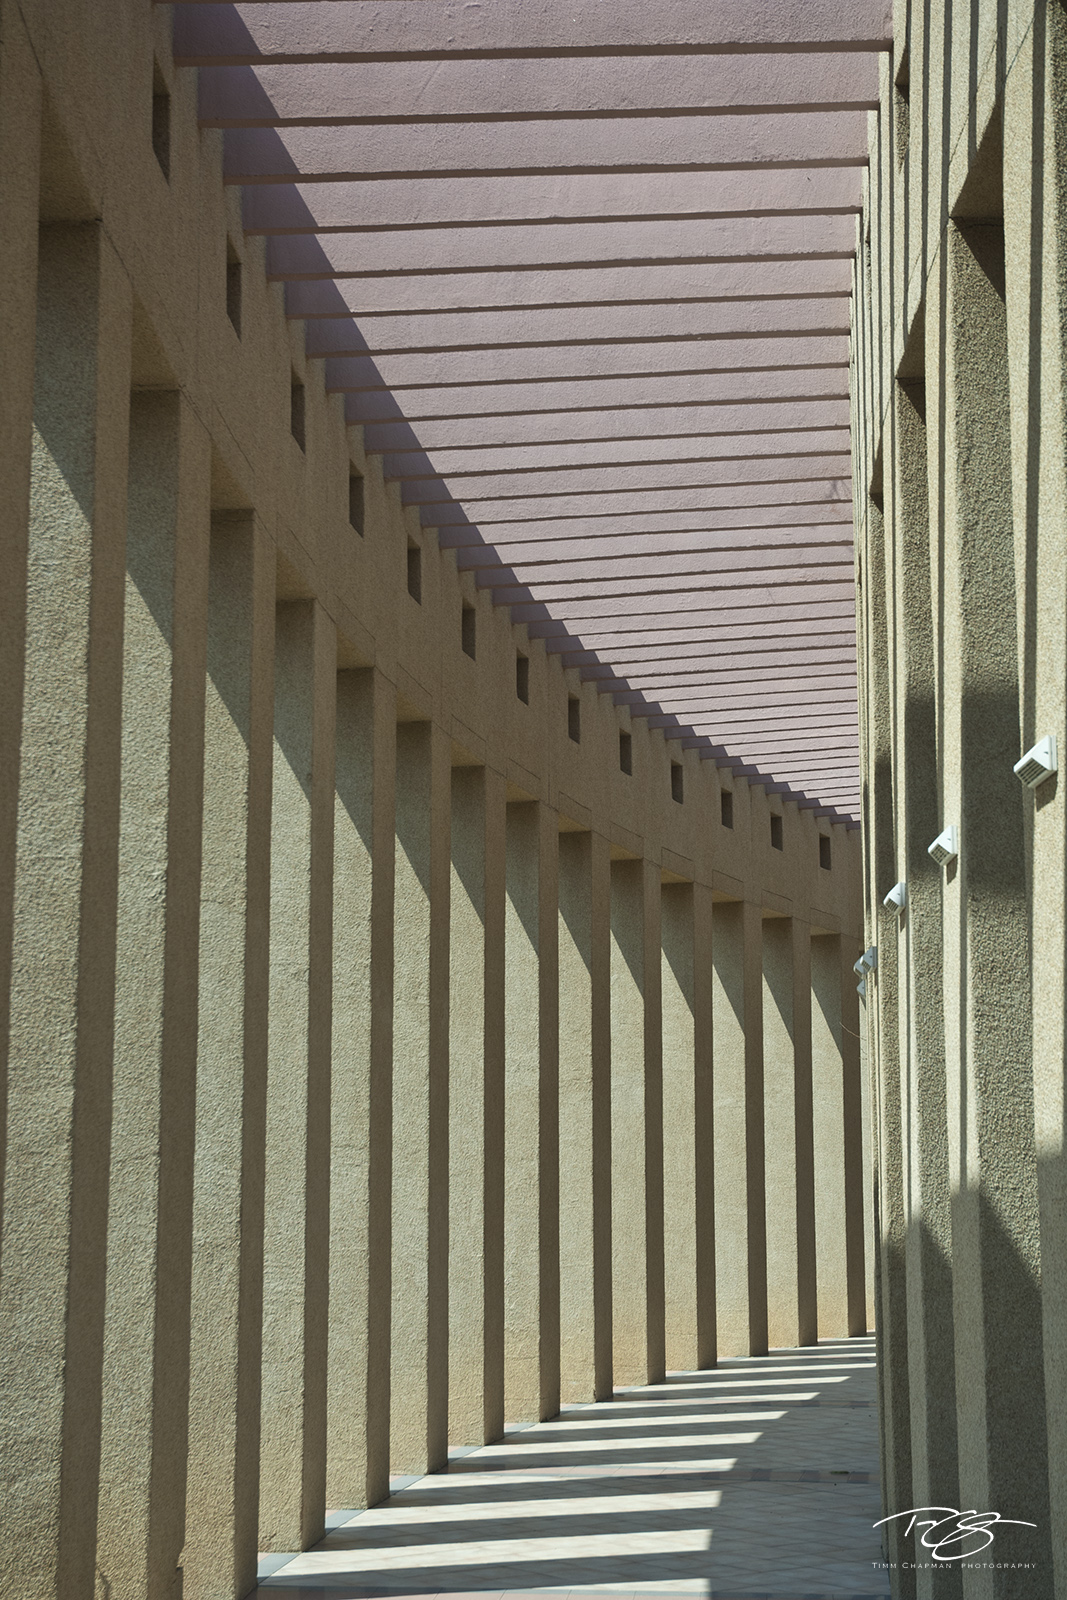 light, shadow, abstract, architecture, columns, leading lines, sweeping, rem, rapid eye movement, beige, lavender, photo